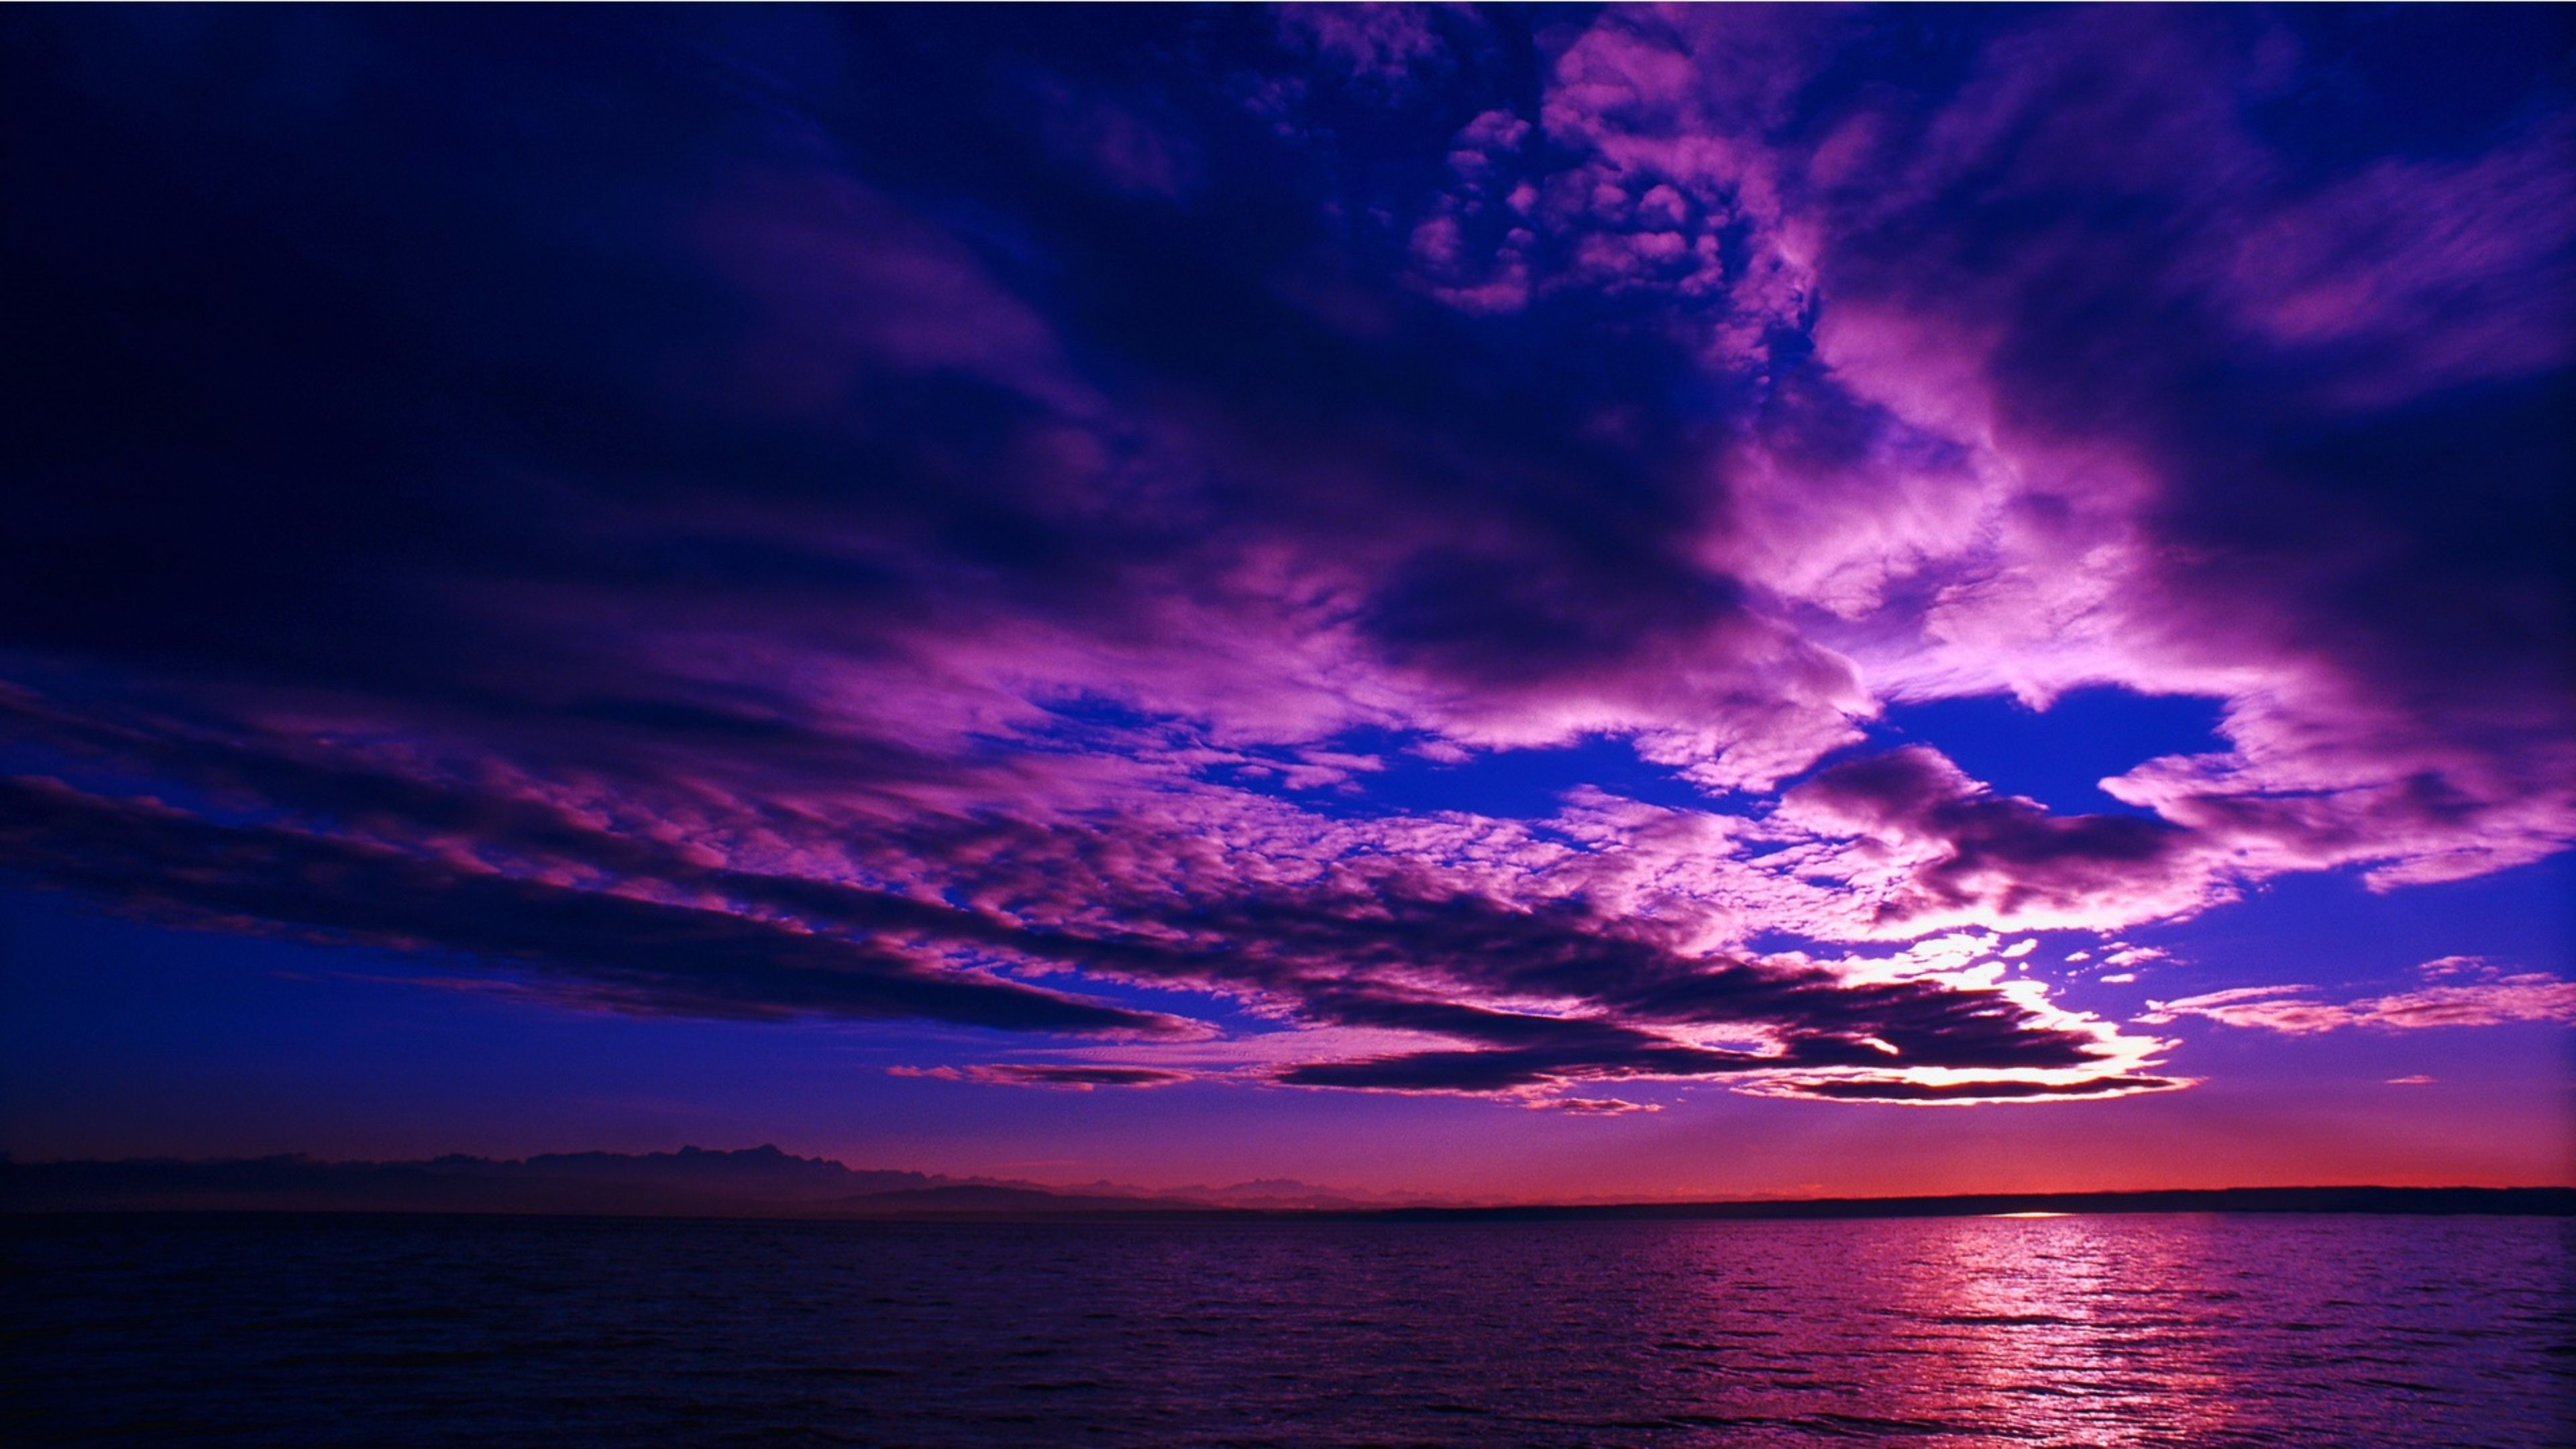 Purple Sky 4K Sunset Wallpaper | Free 4K Wallpaper